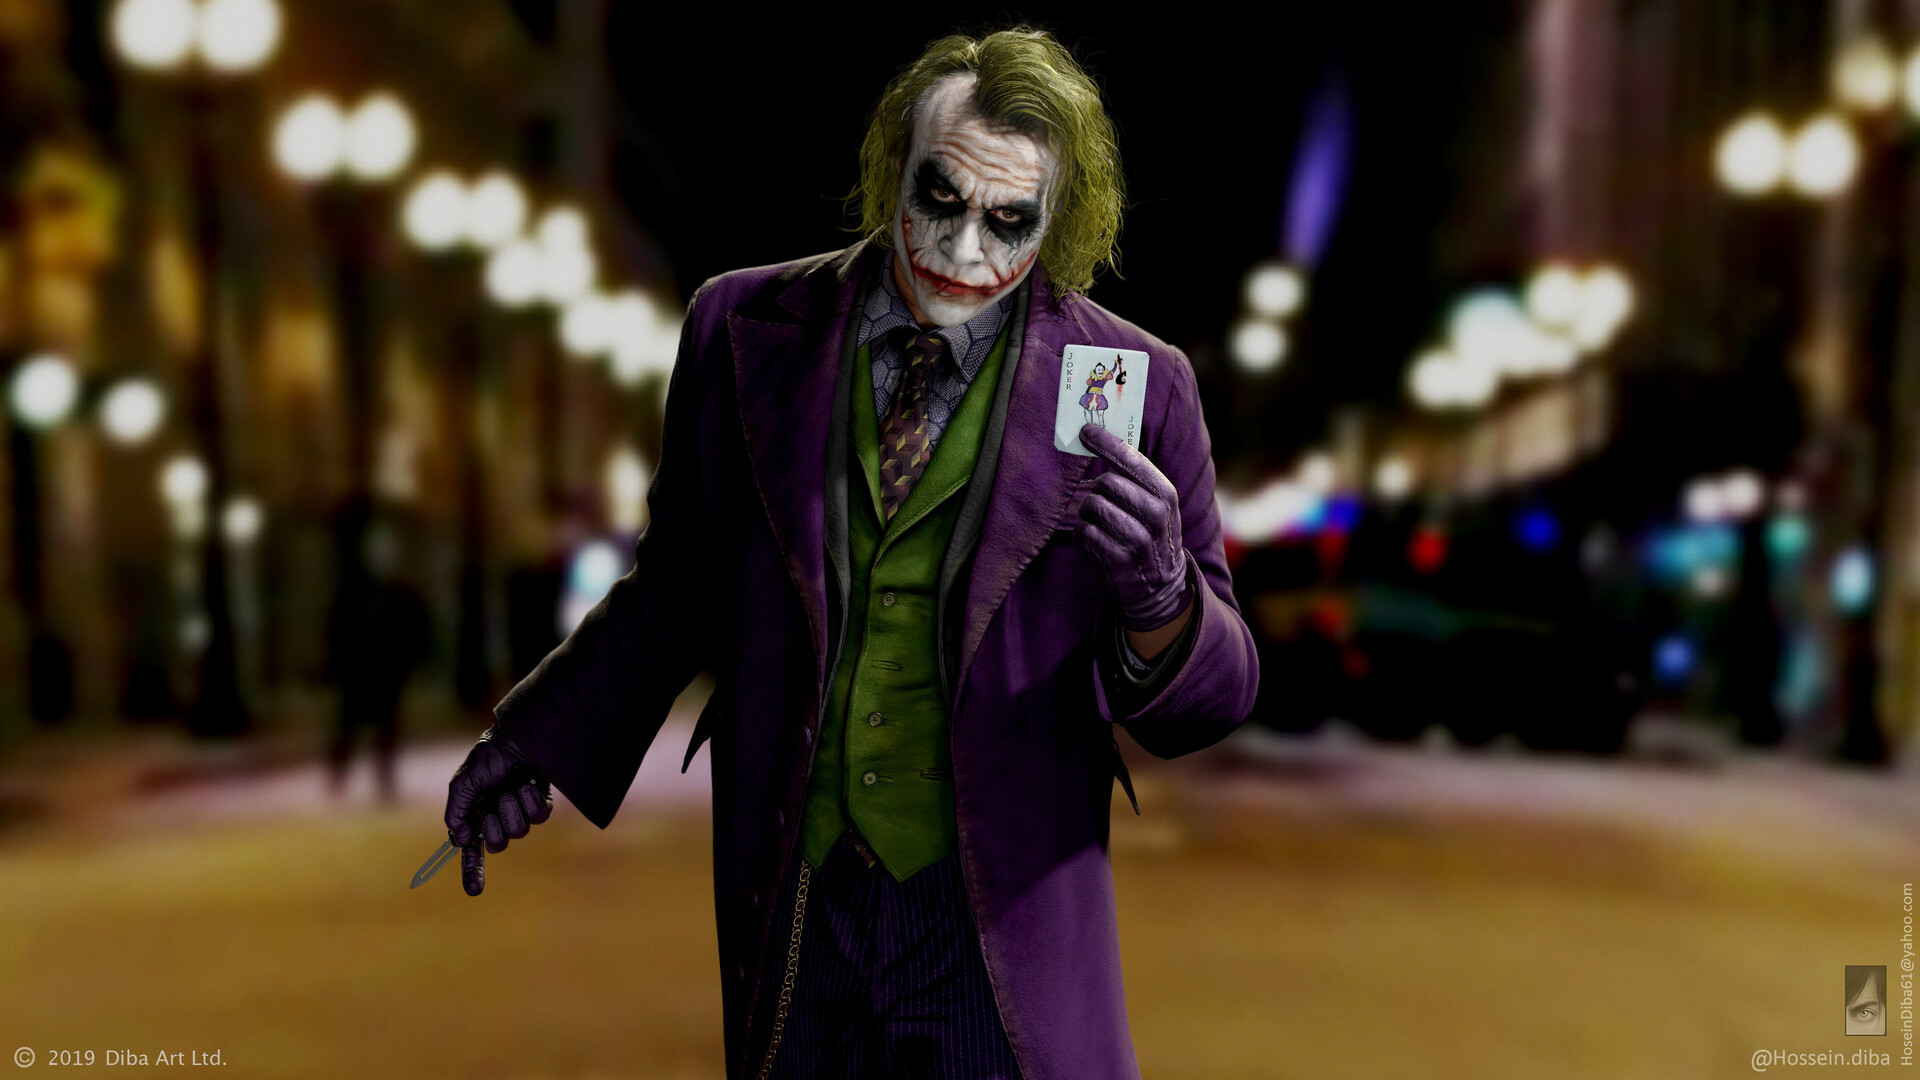 Wallpaper Of Heath Ledger Joker The Dark Knight Hossein